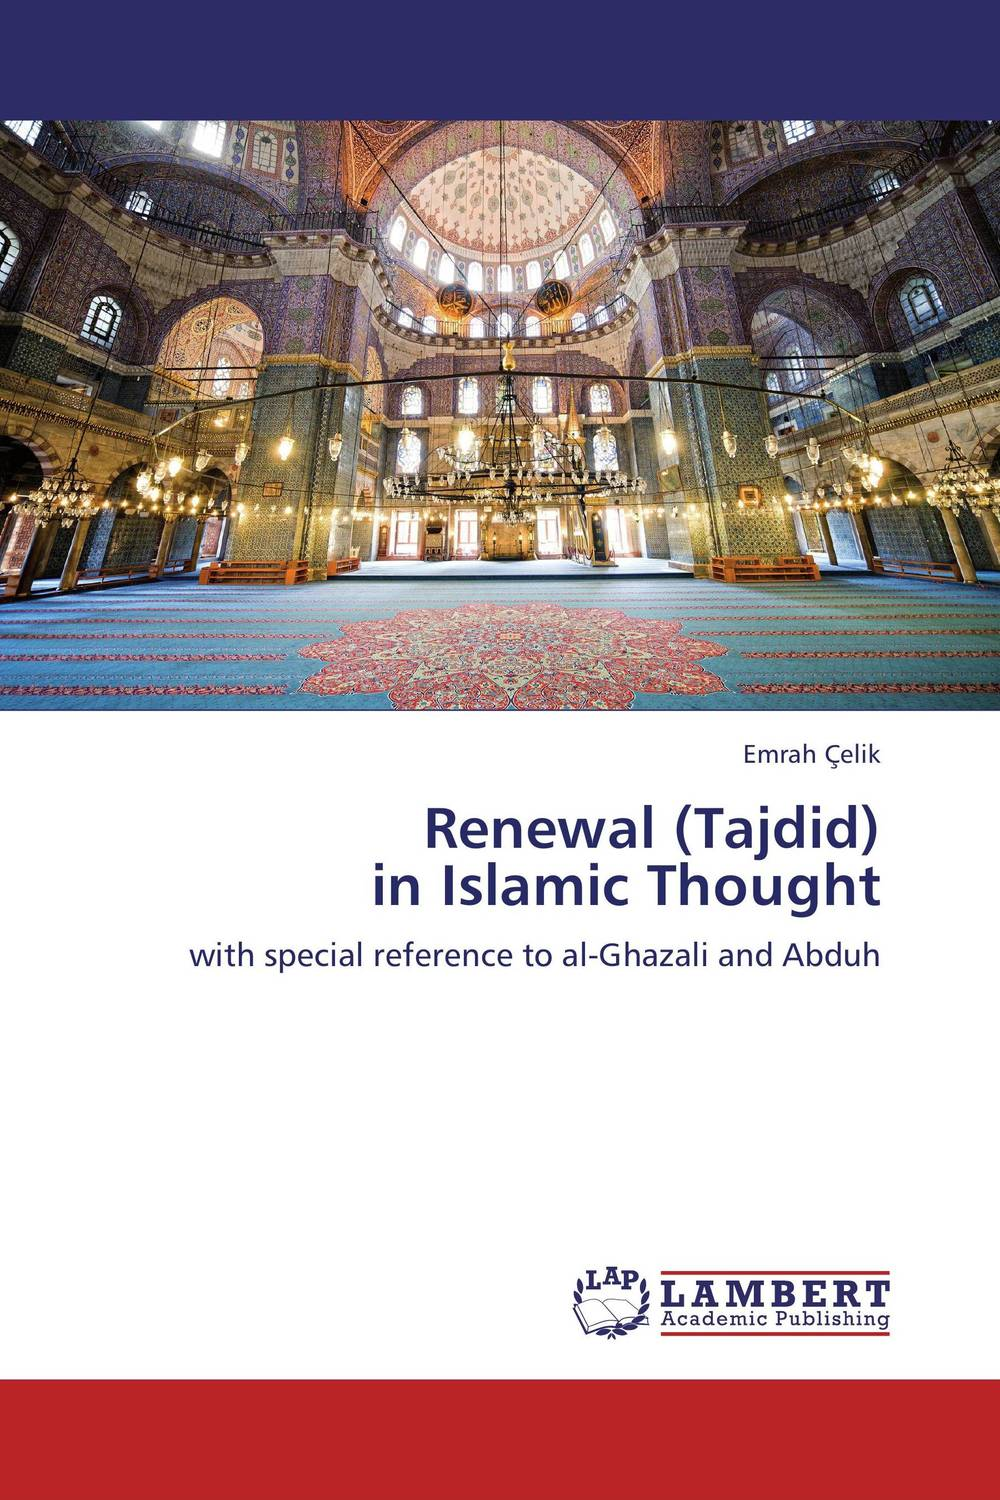 Renewal (Tajdid) in Islamic Thought natalie schoon modern islamic banking products and processes in practice